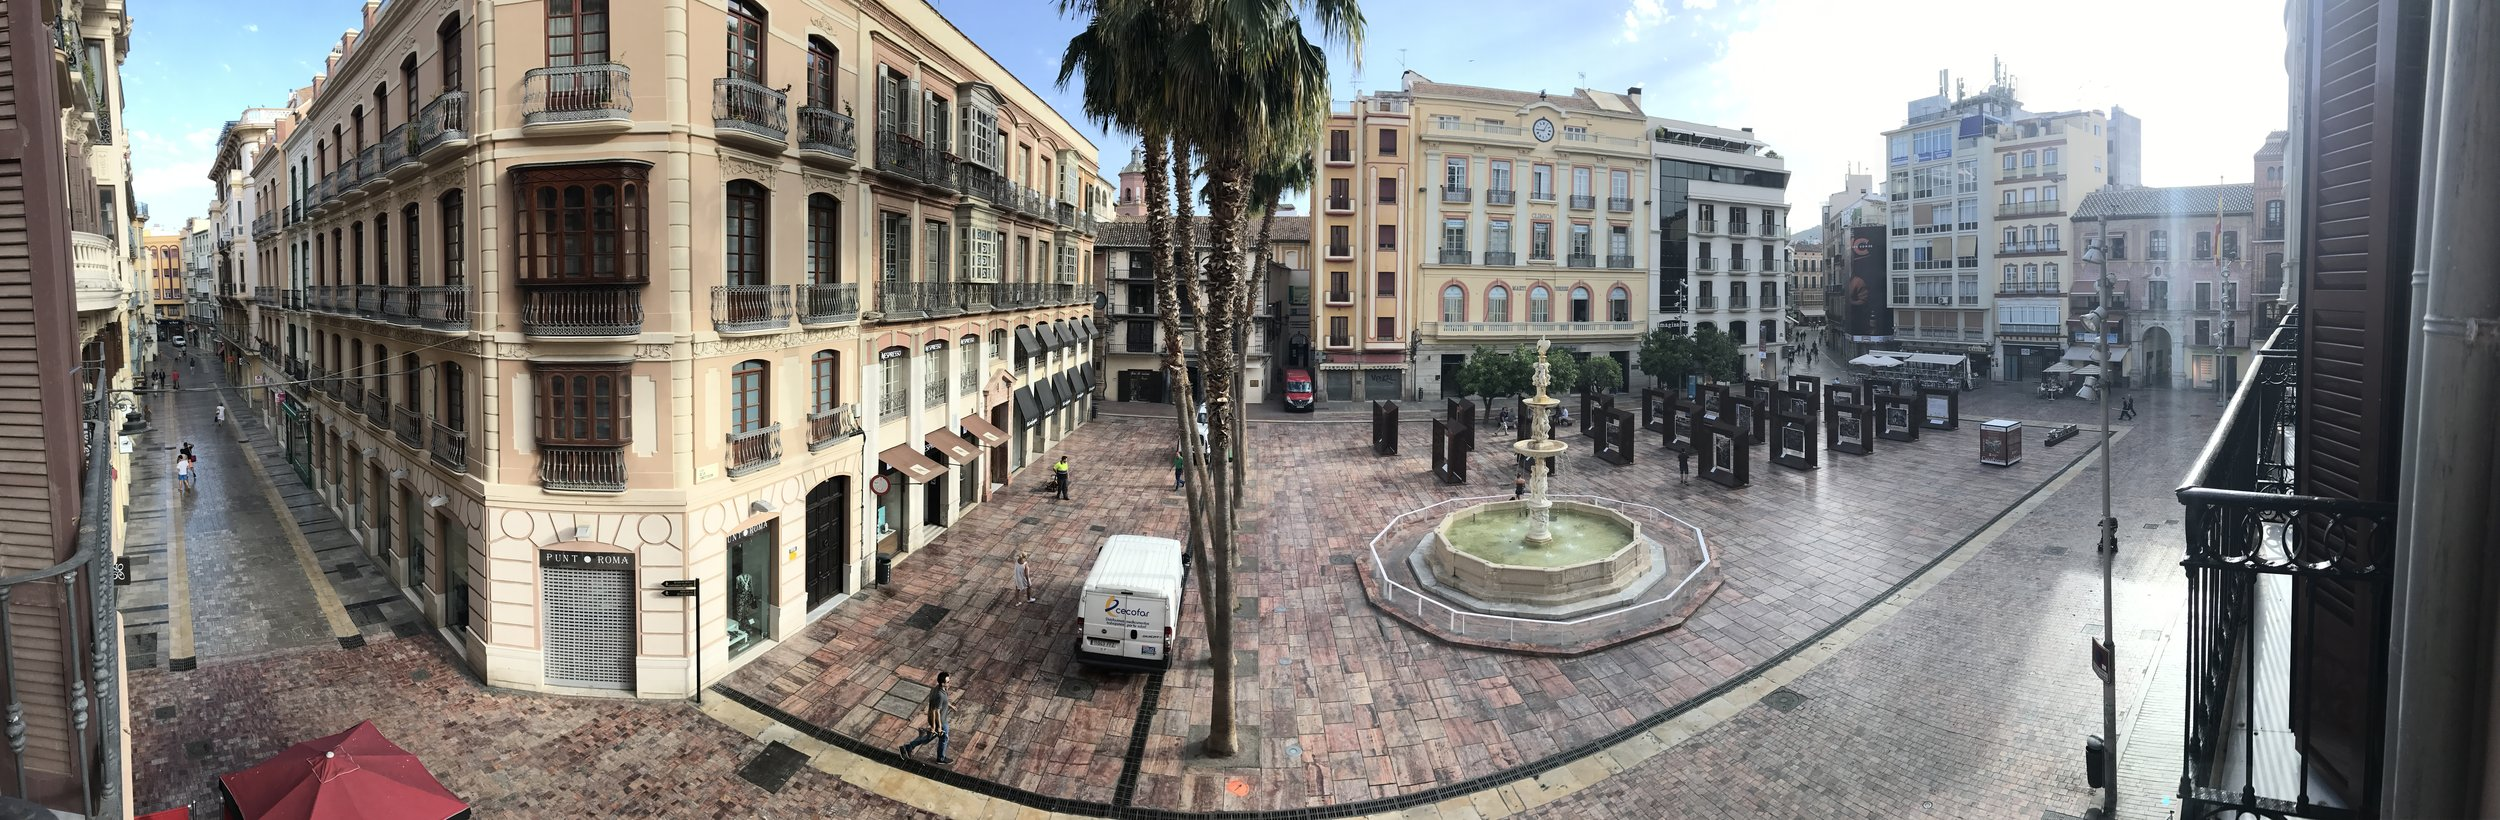 Use the pano feature of your smartphone to tell a more interesting story in one frame. Shot on vacation from our hotel room outside of Plaza de la Constitución.